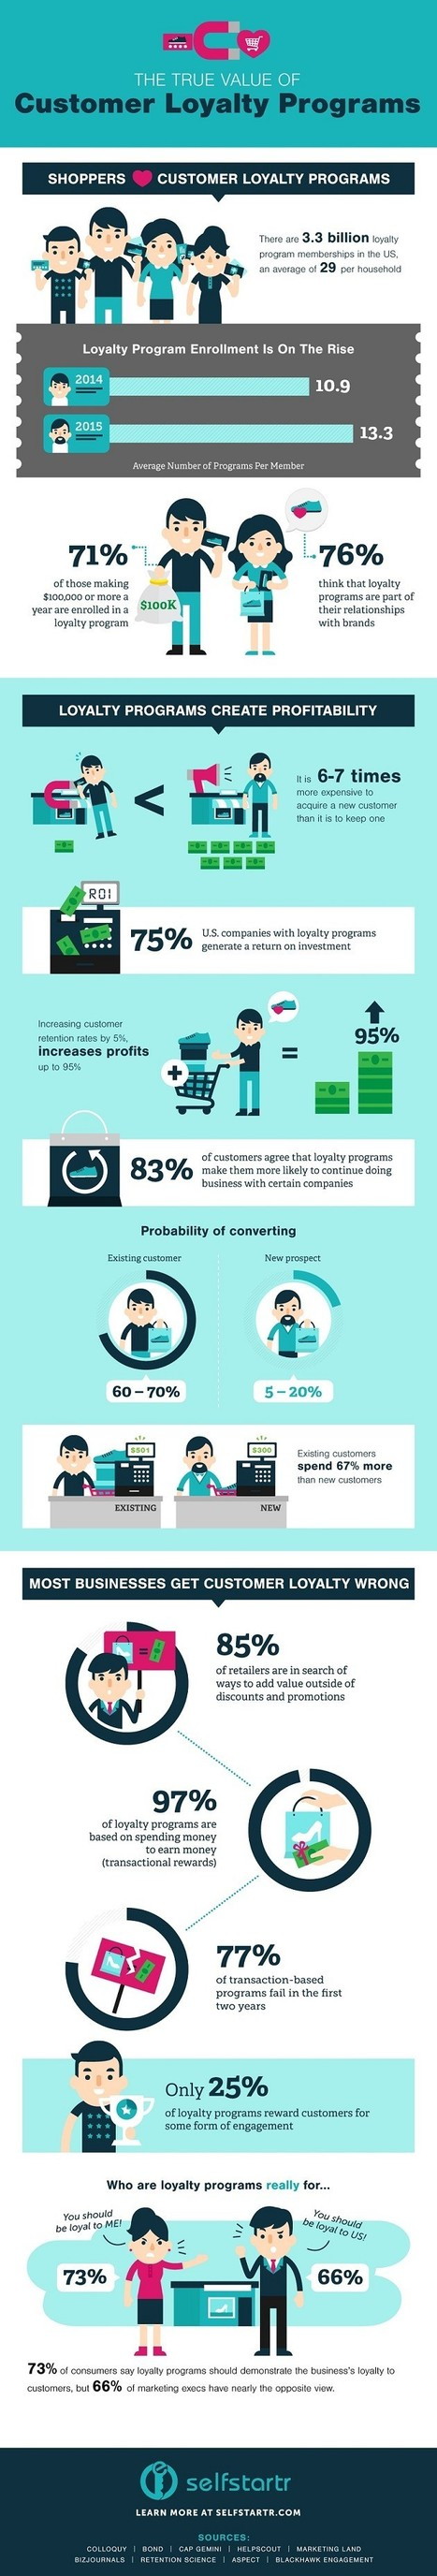 The True Value of Customer Loyalty Programs [Infographic] | New Customer & Employee Management | Scoop.it